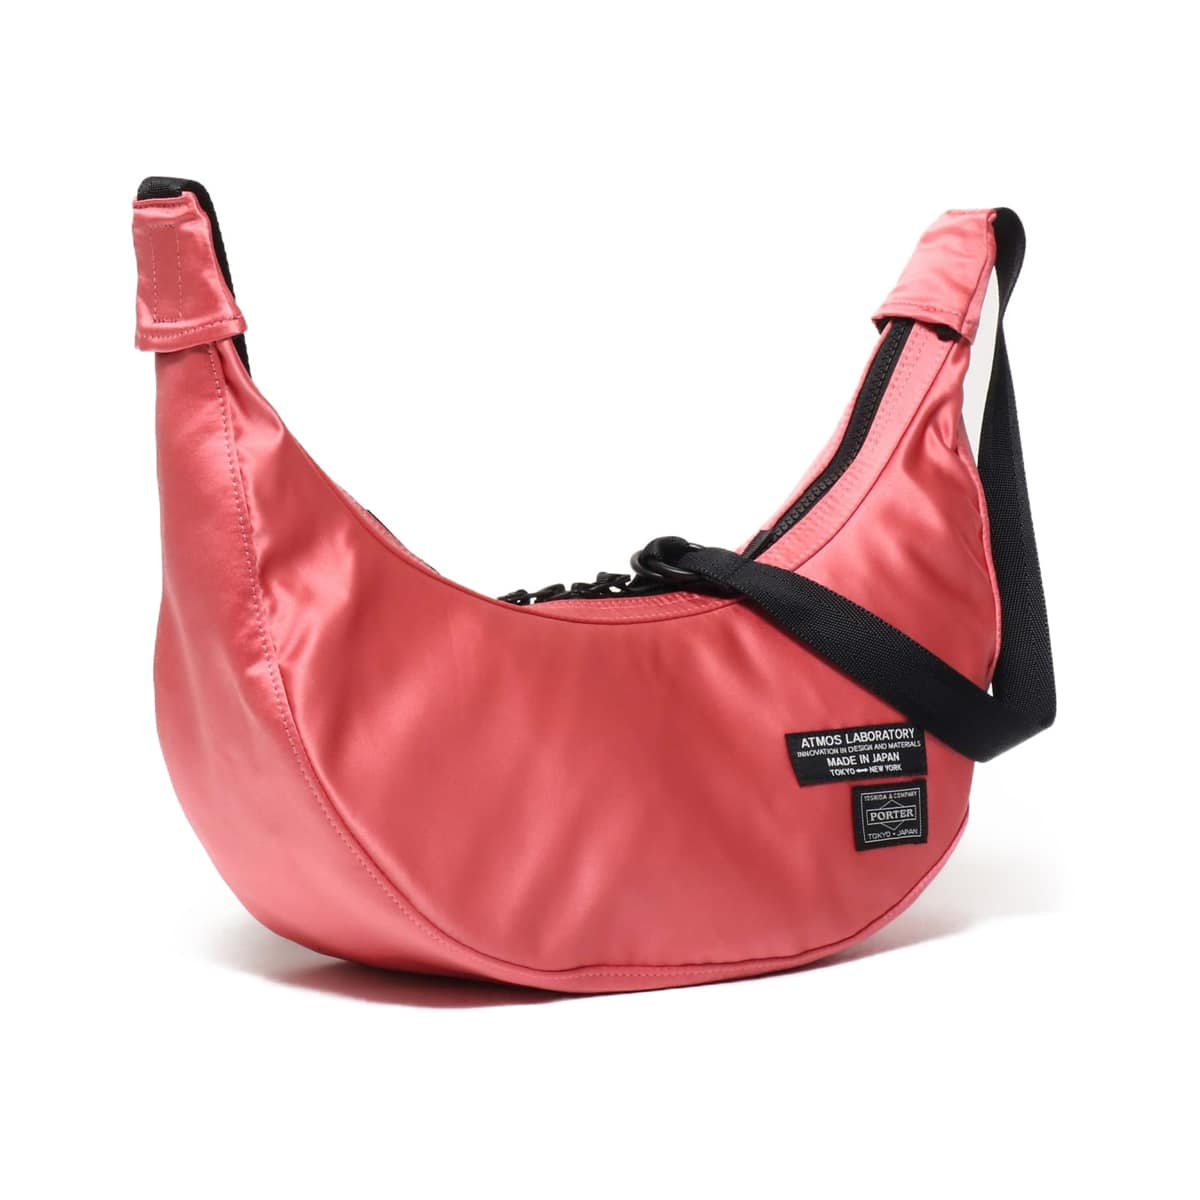 PORTER x ATMOS LAB SATIN SHOULDER BAG PINK 19SU-S_photo_large